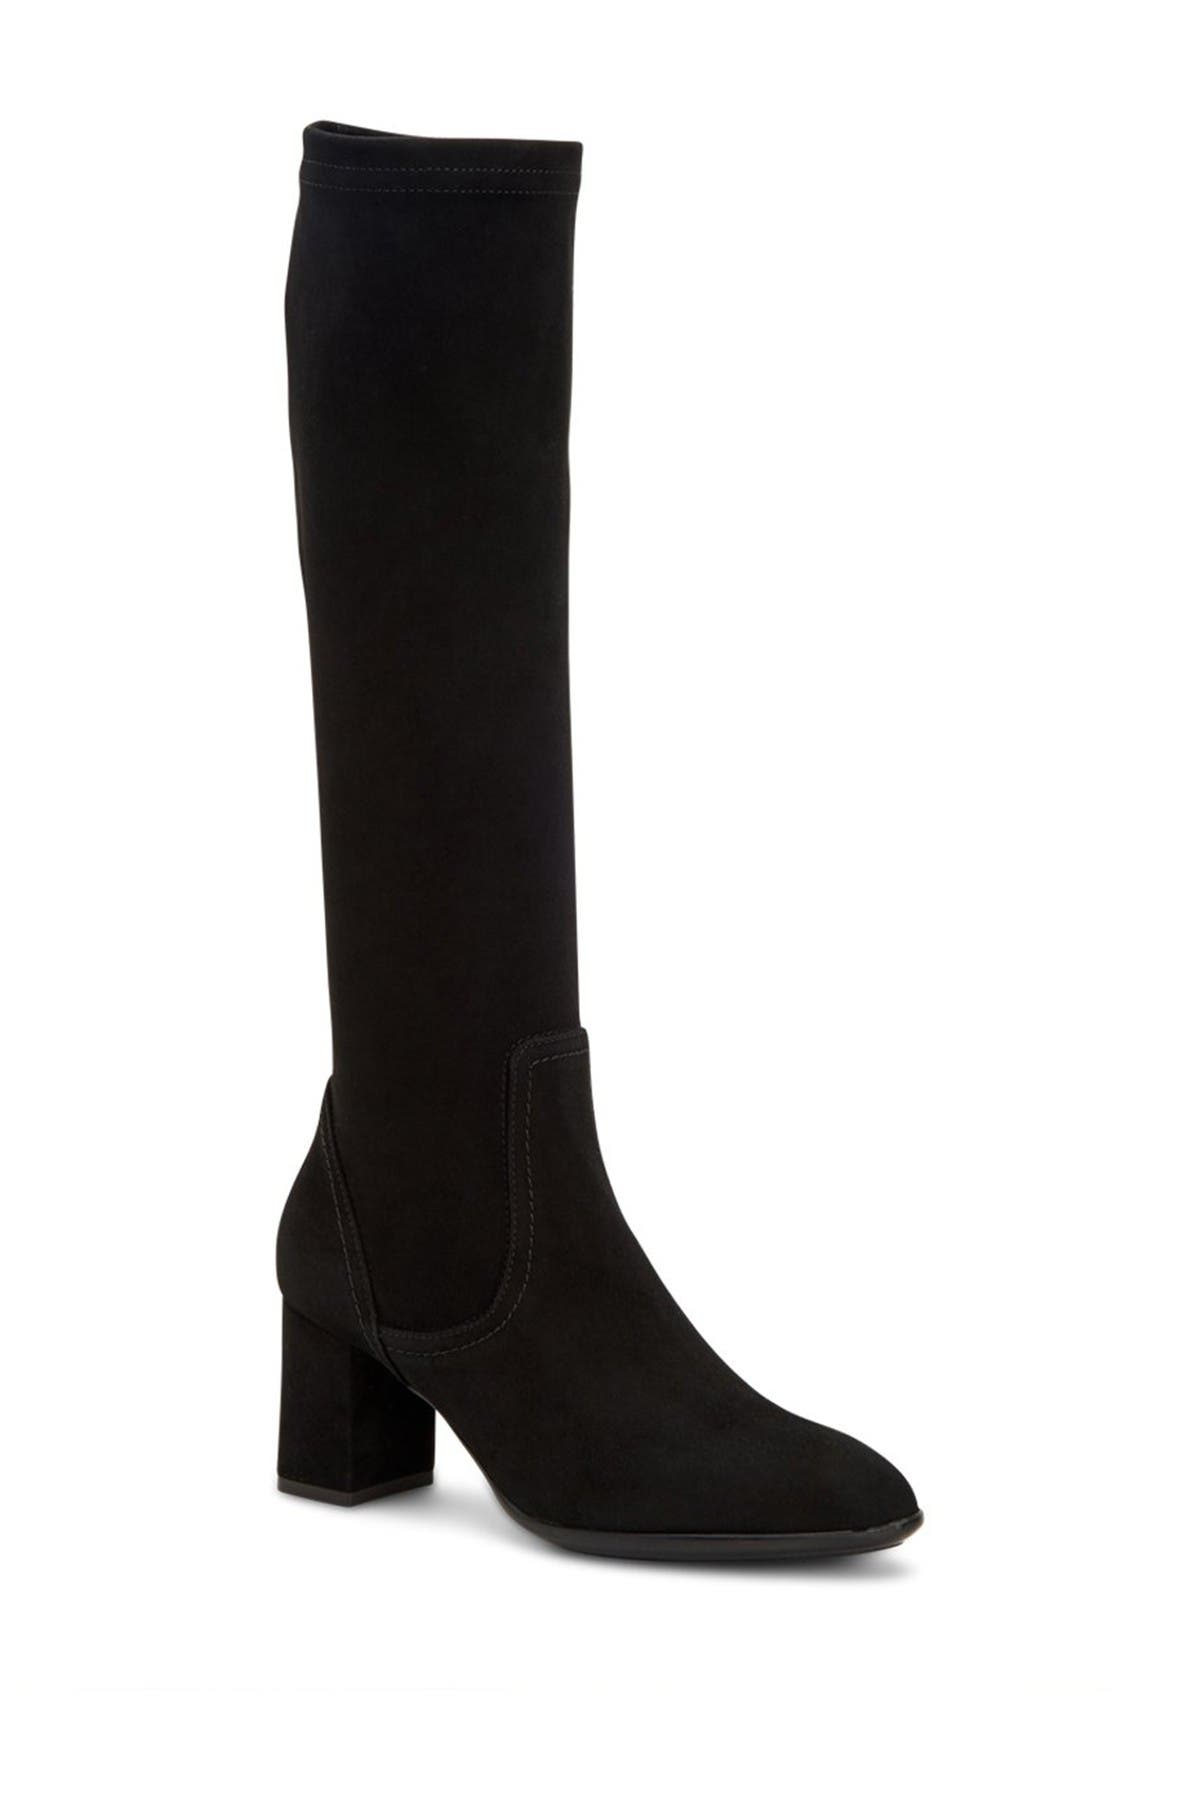 women's high boots on sale